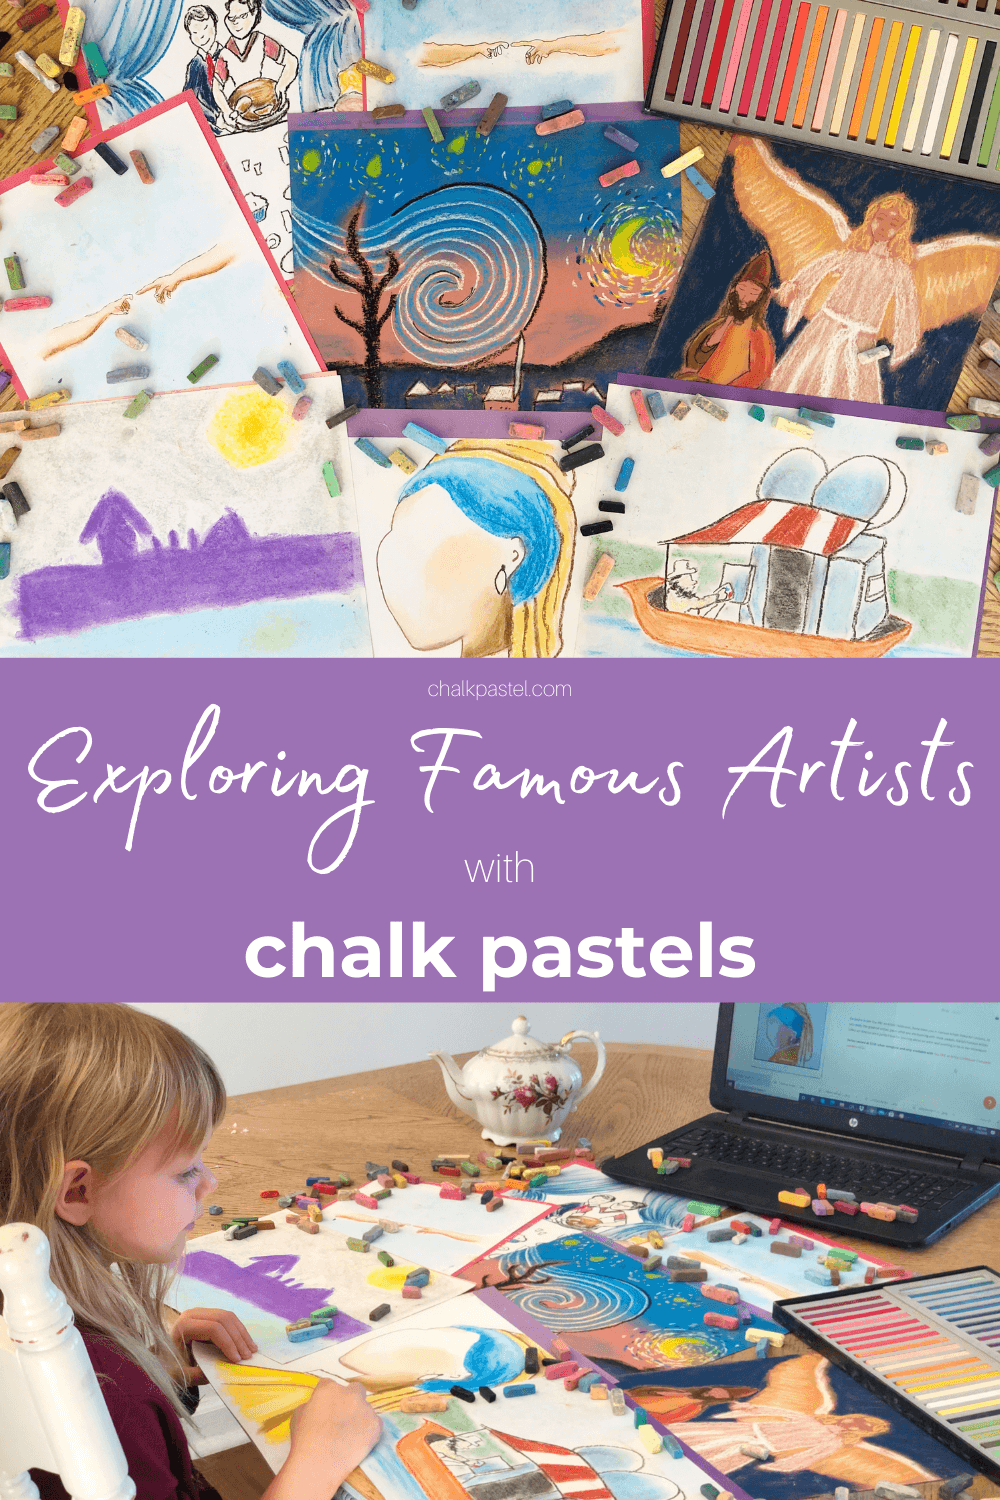 Exploring Famous Artists with Chalk Pastels: Exploring famous artists with your kids has never been easier! Now you can expose your children to the glory and wonder of master artists like da Vinci, Michelangelo, Monet, Rembrandt, Vermeer, and so many more with chalk pastels! #famousartistsforkids #famousartists #chalkpastels #masterartists #homeschool